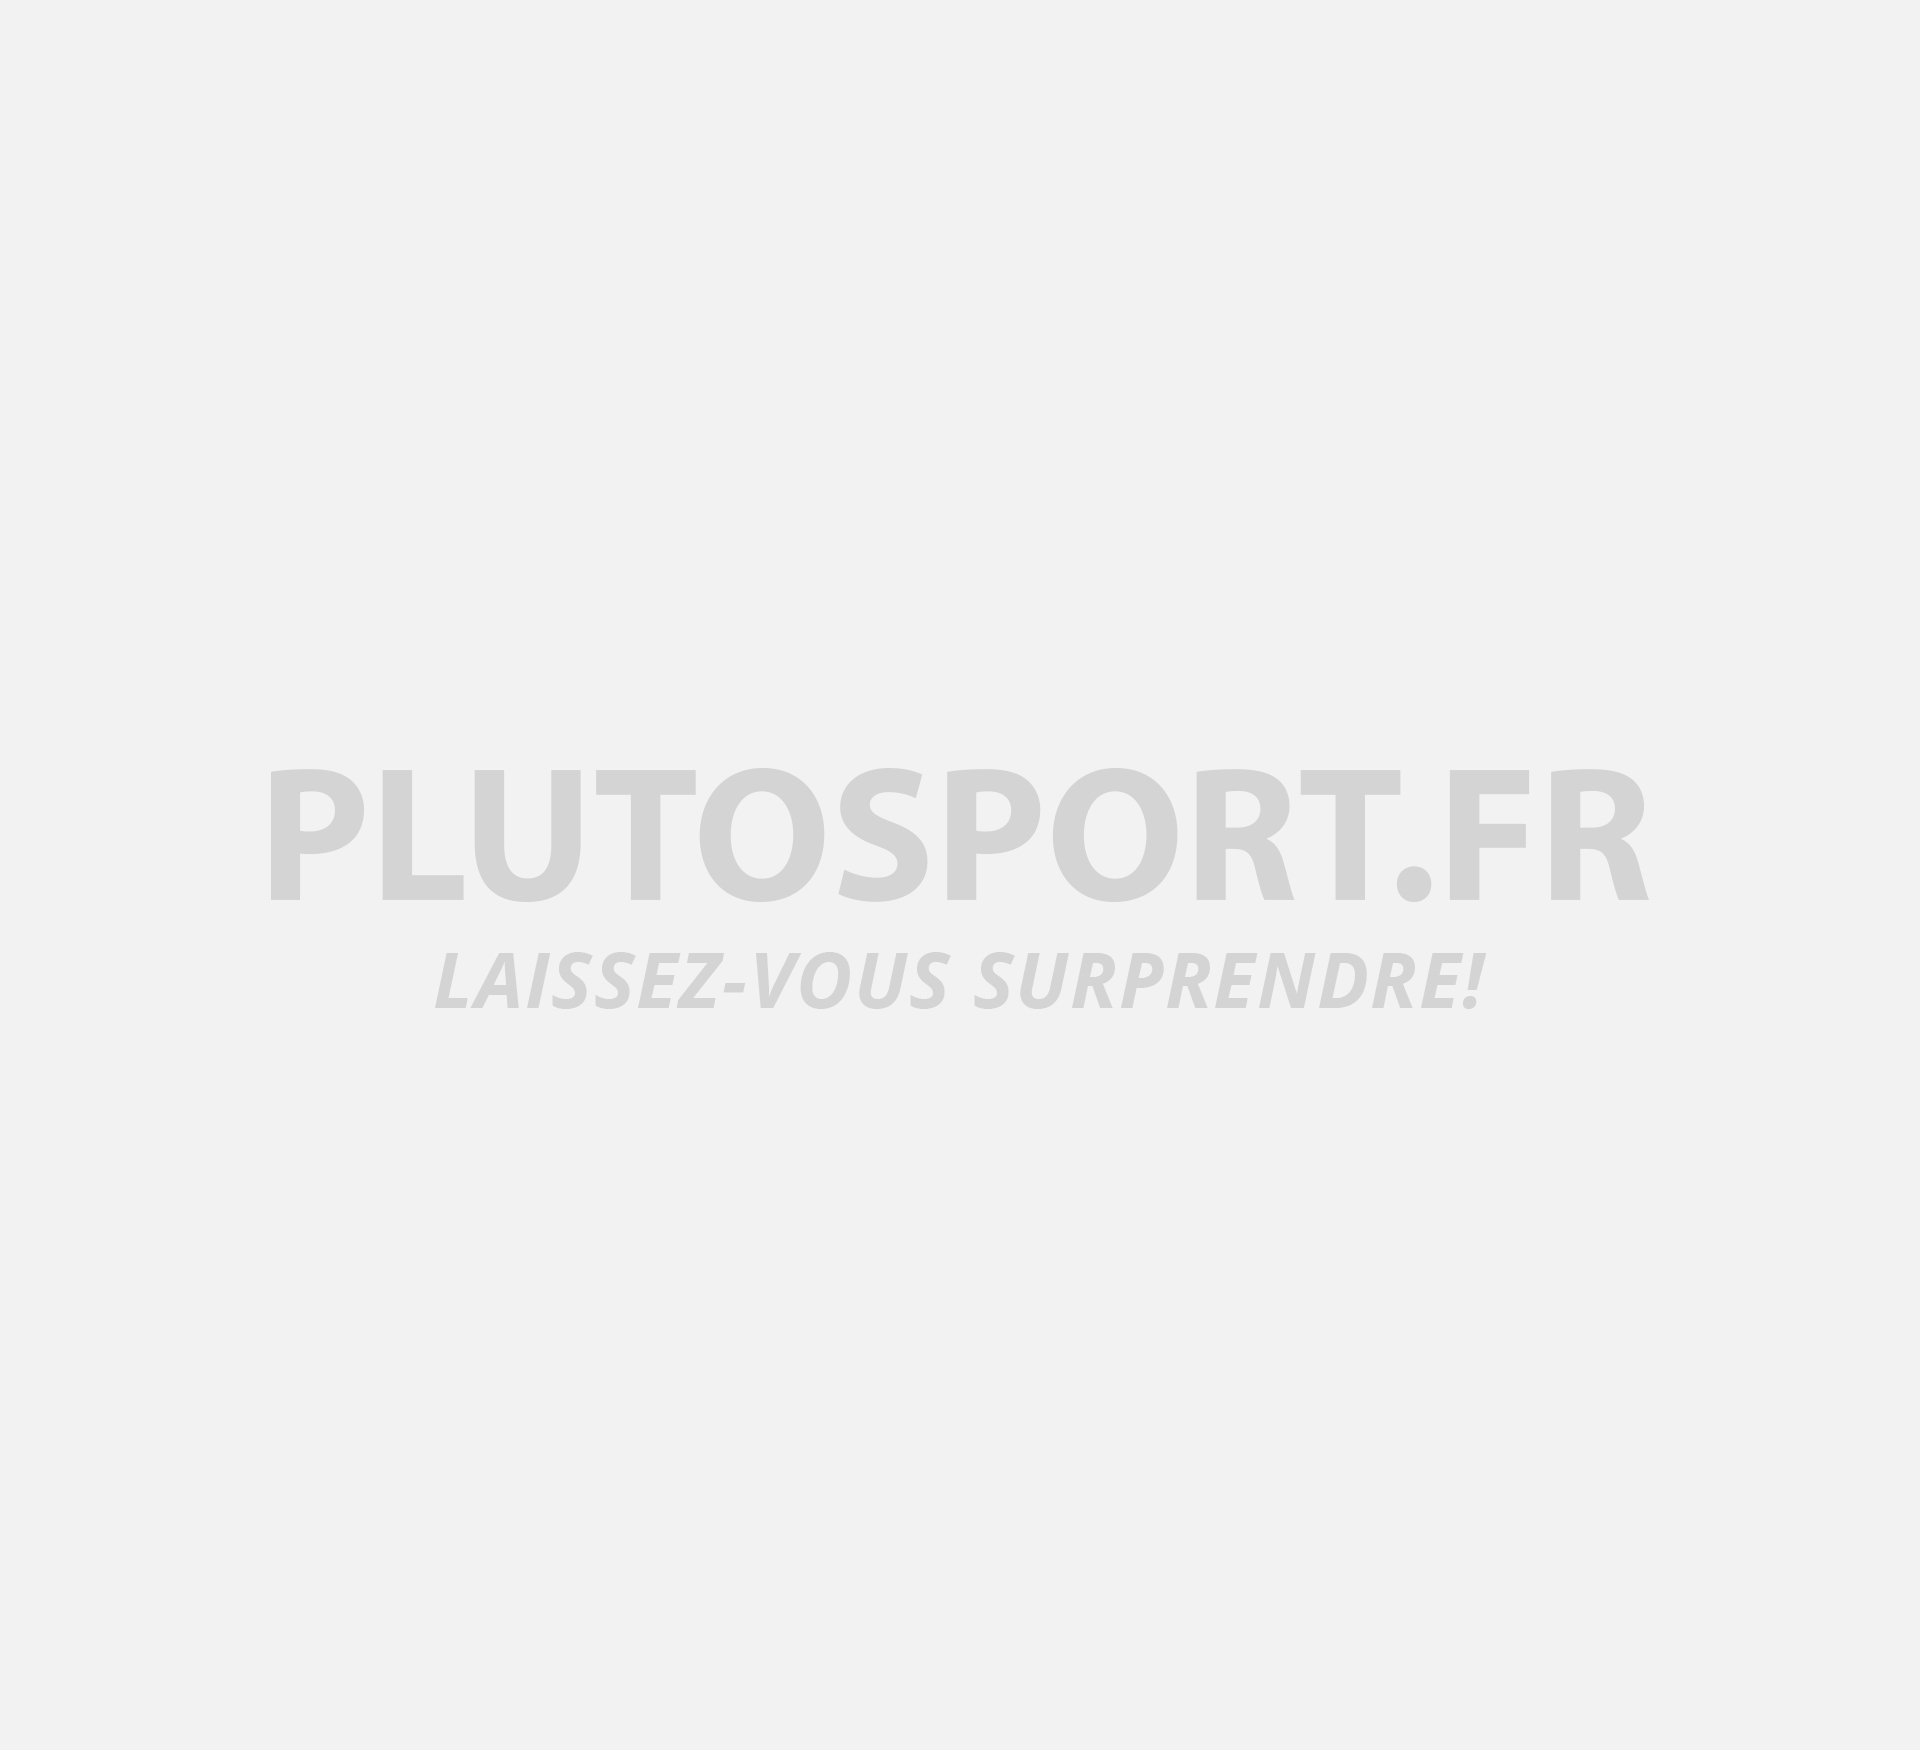 Vissés Crampons Adidas Chaussures Leather 16 Sg Ace 1 rwAaqY0A